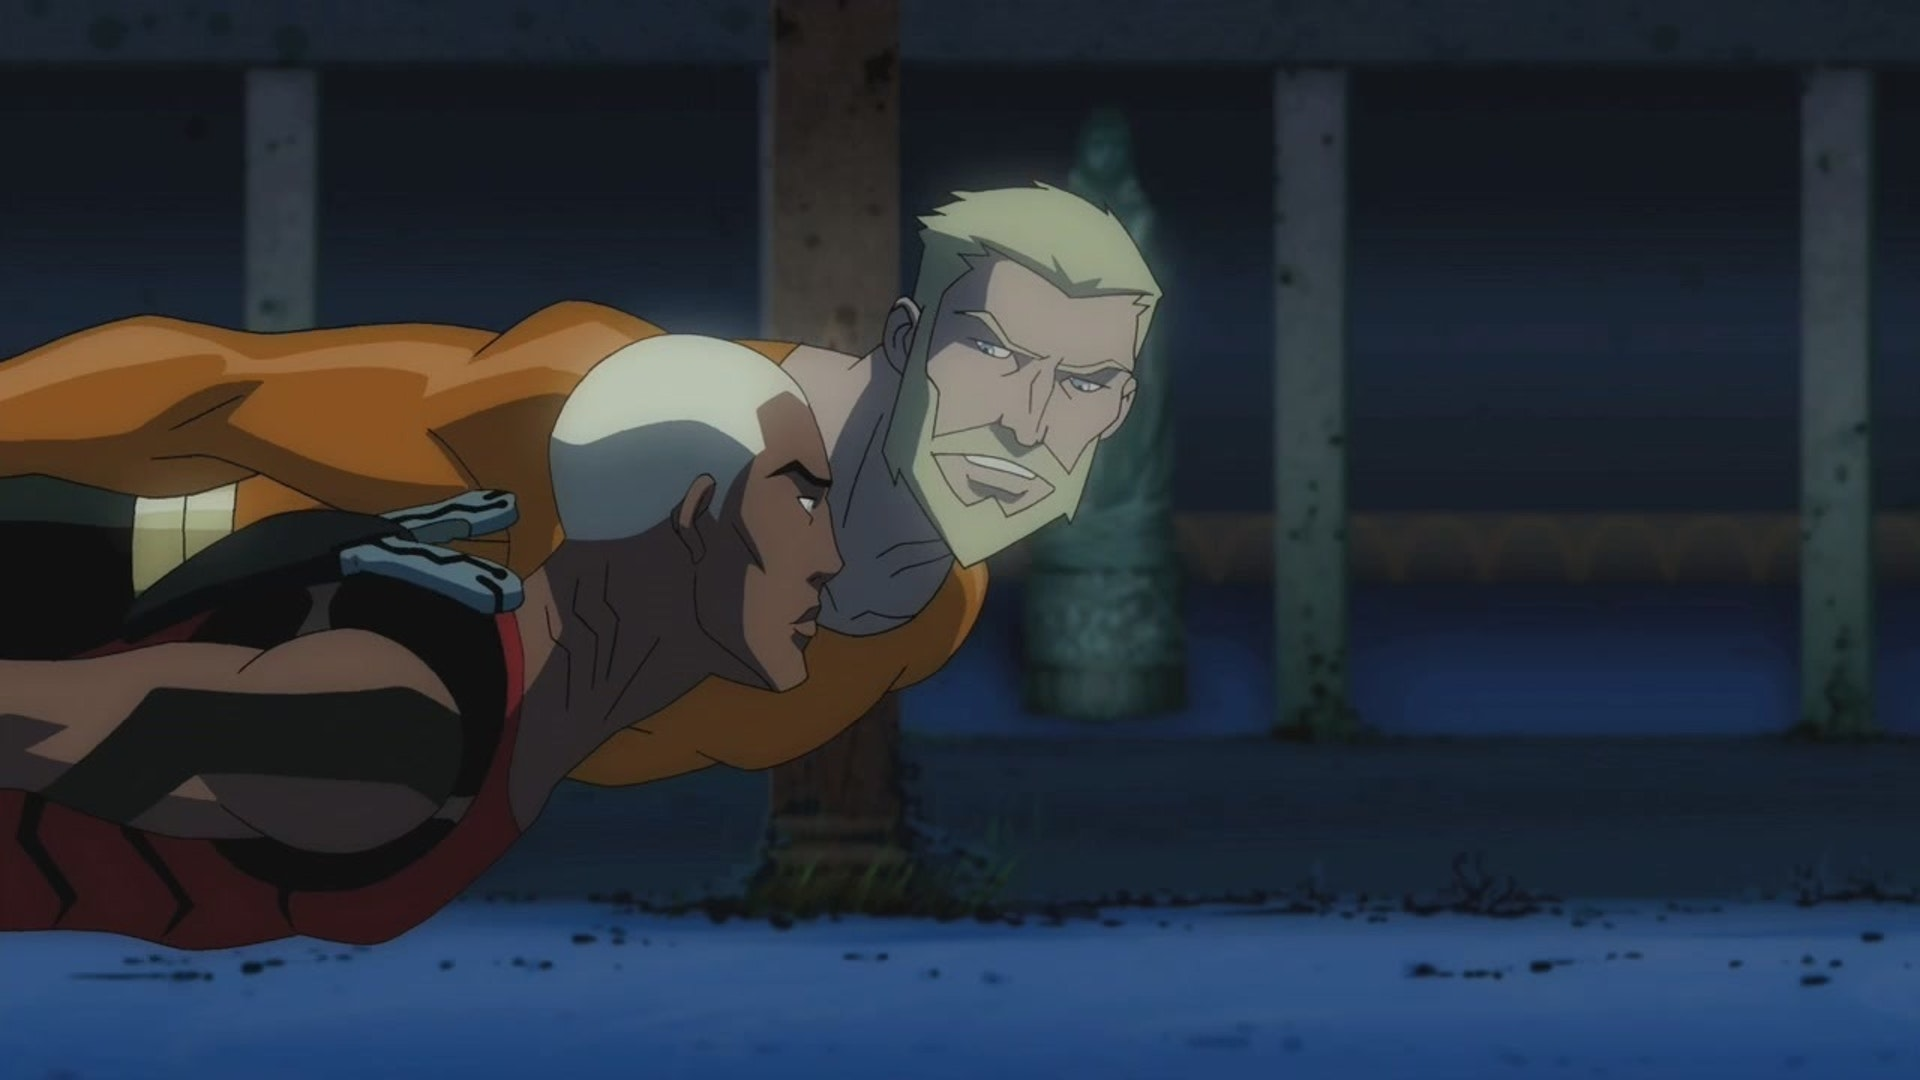 Aquaman discusses politics with his protege, Aqualad, in 'Young Justice.'